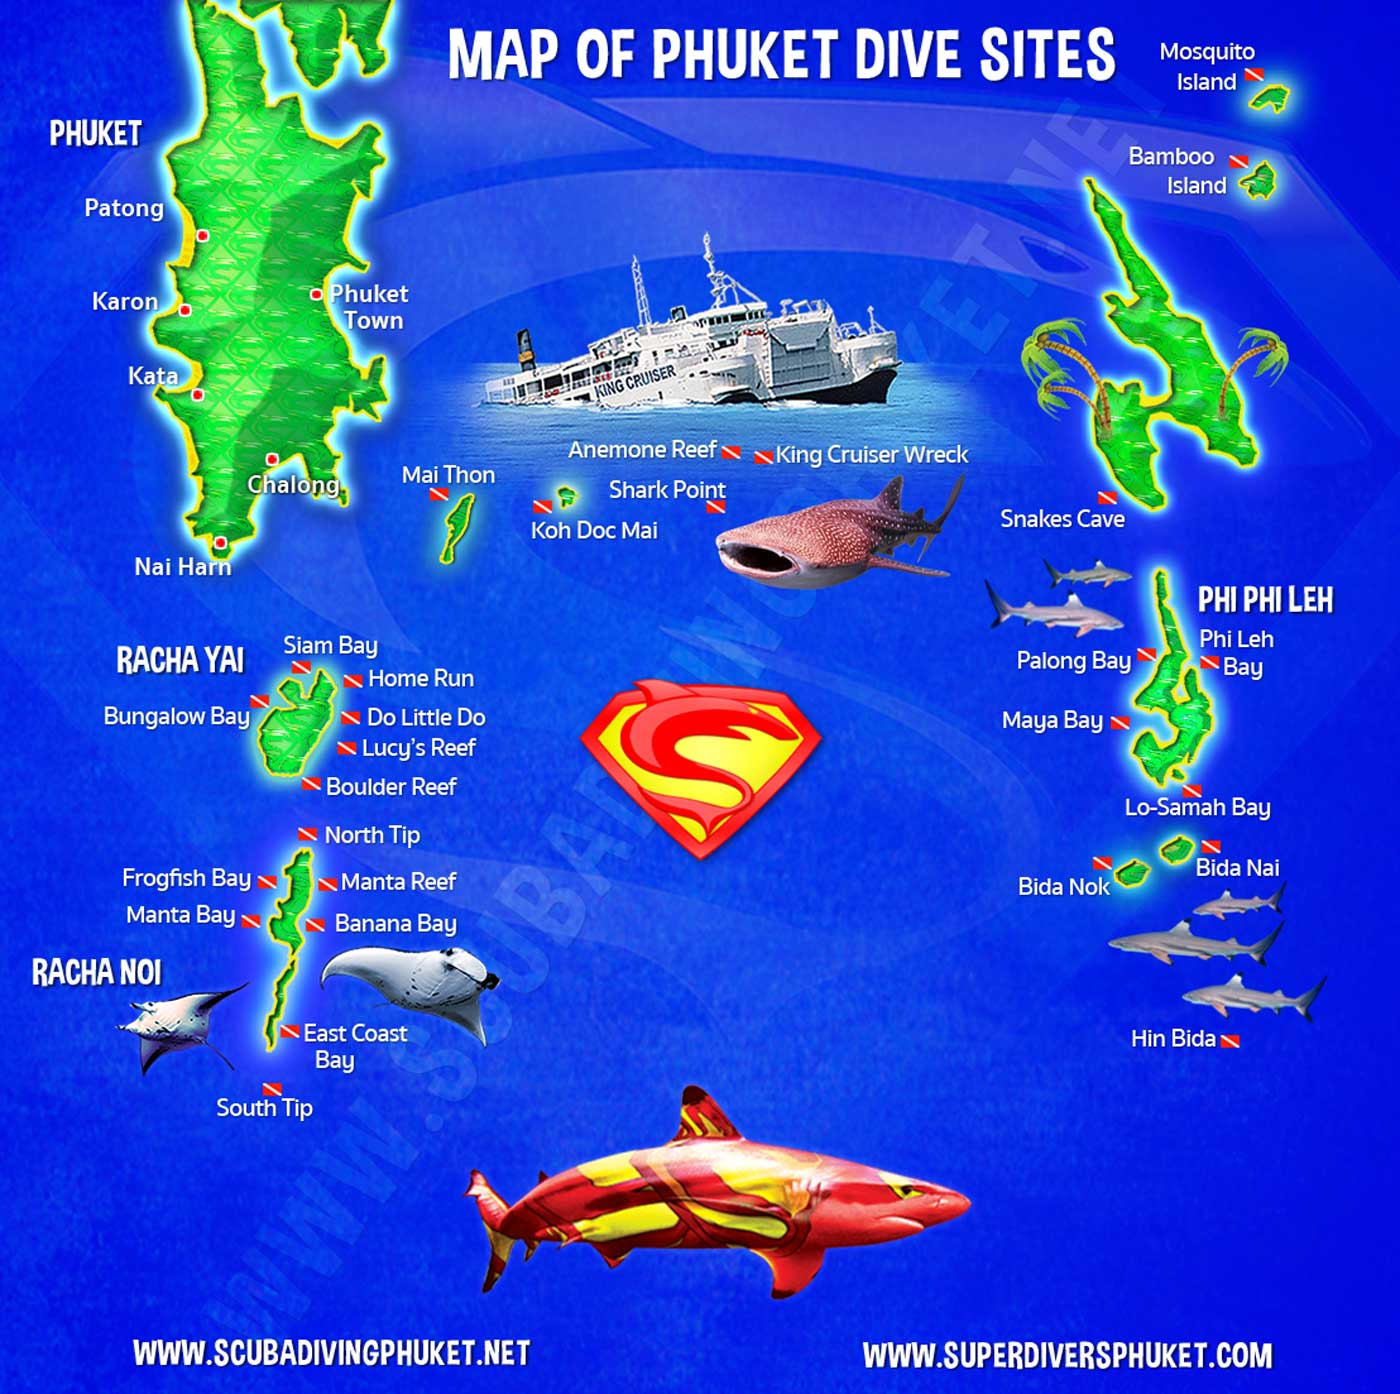 Map of Phuket dive sites by Super Divers